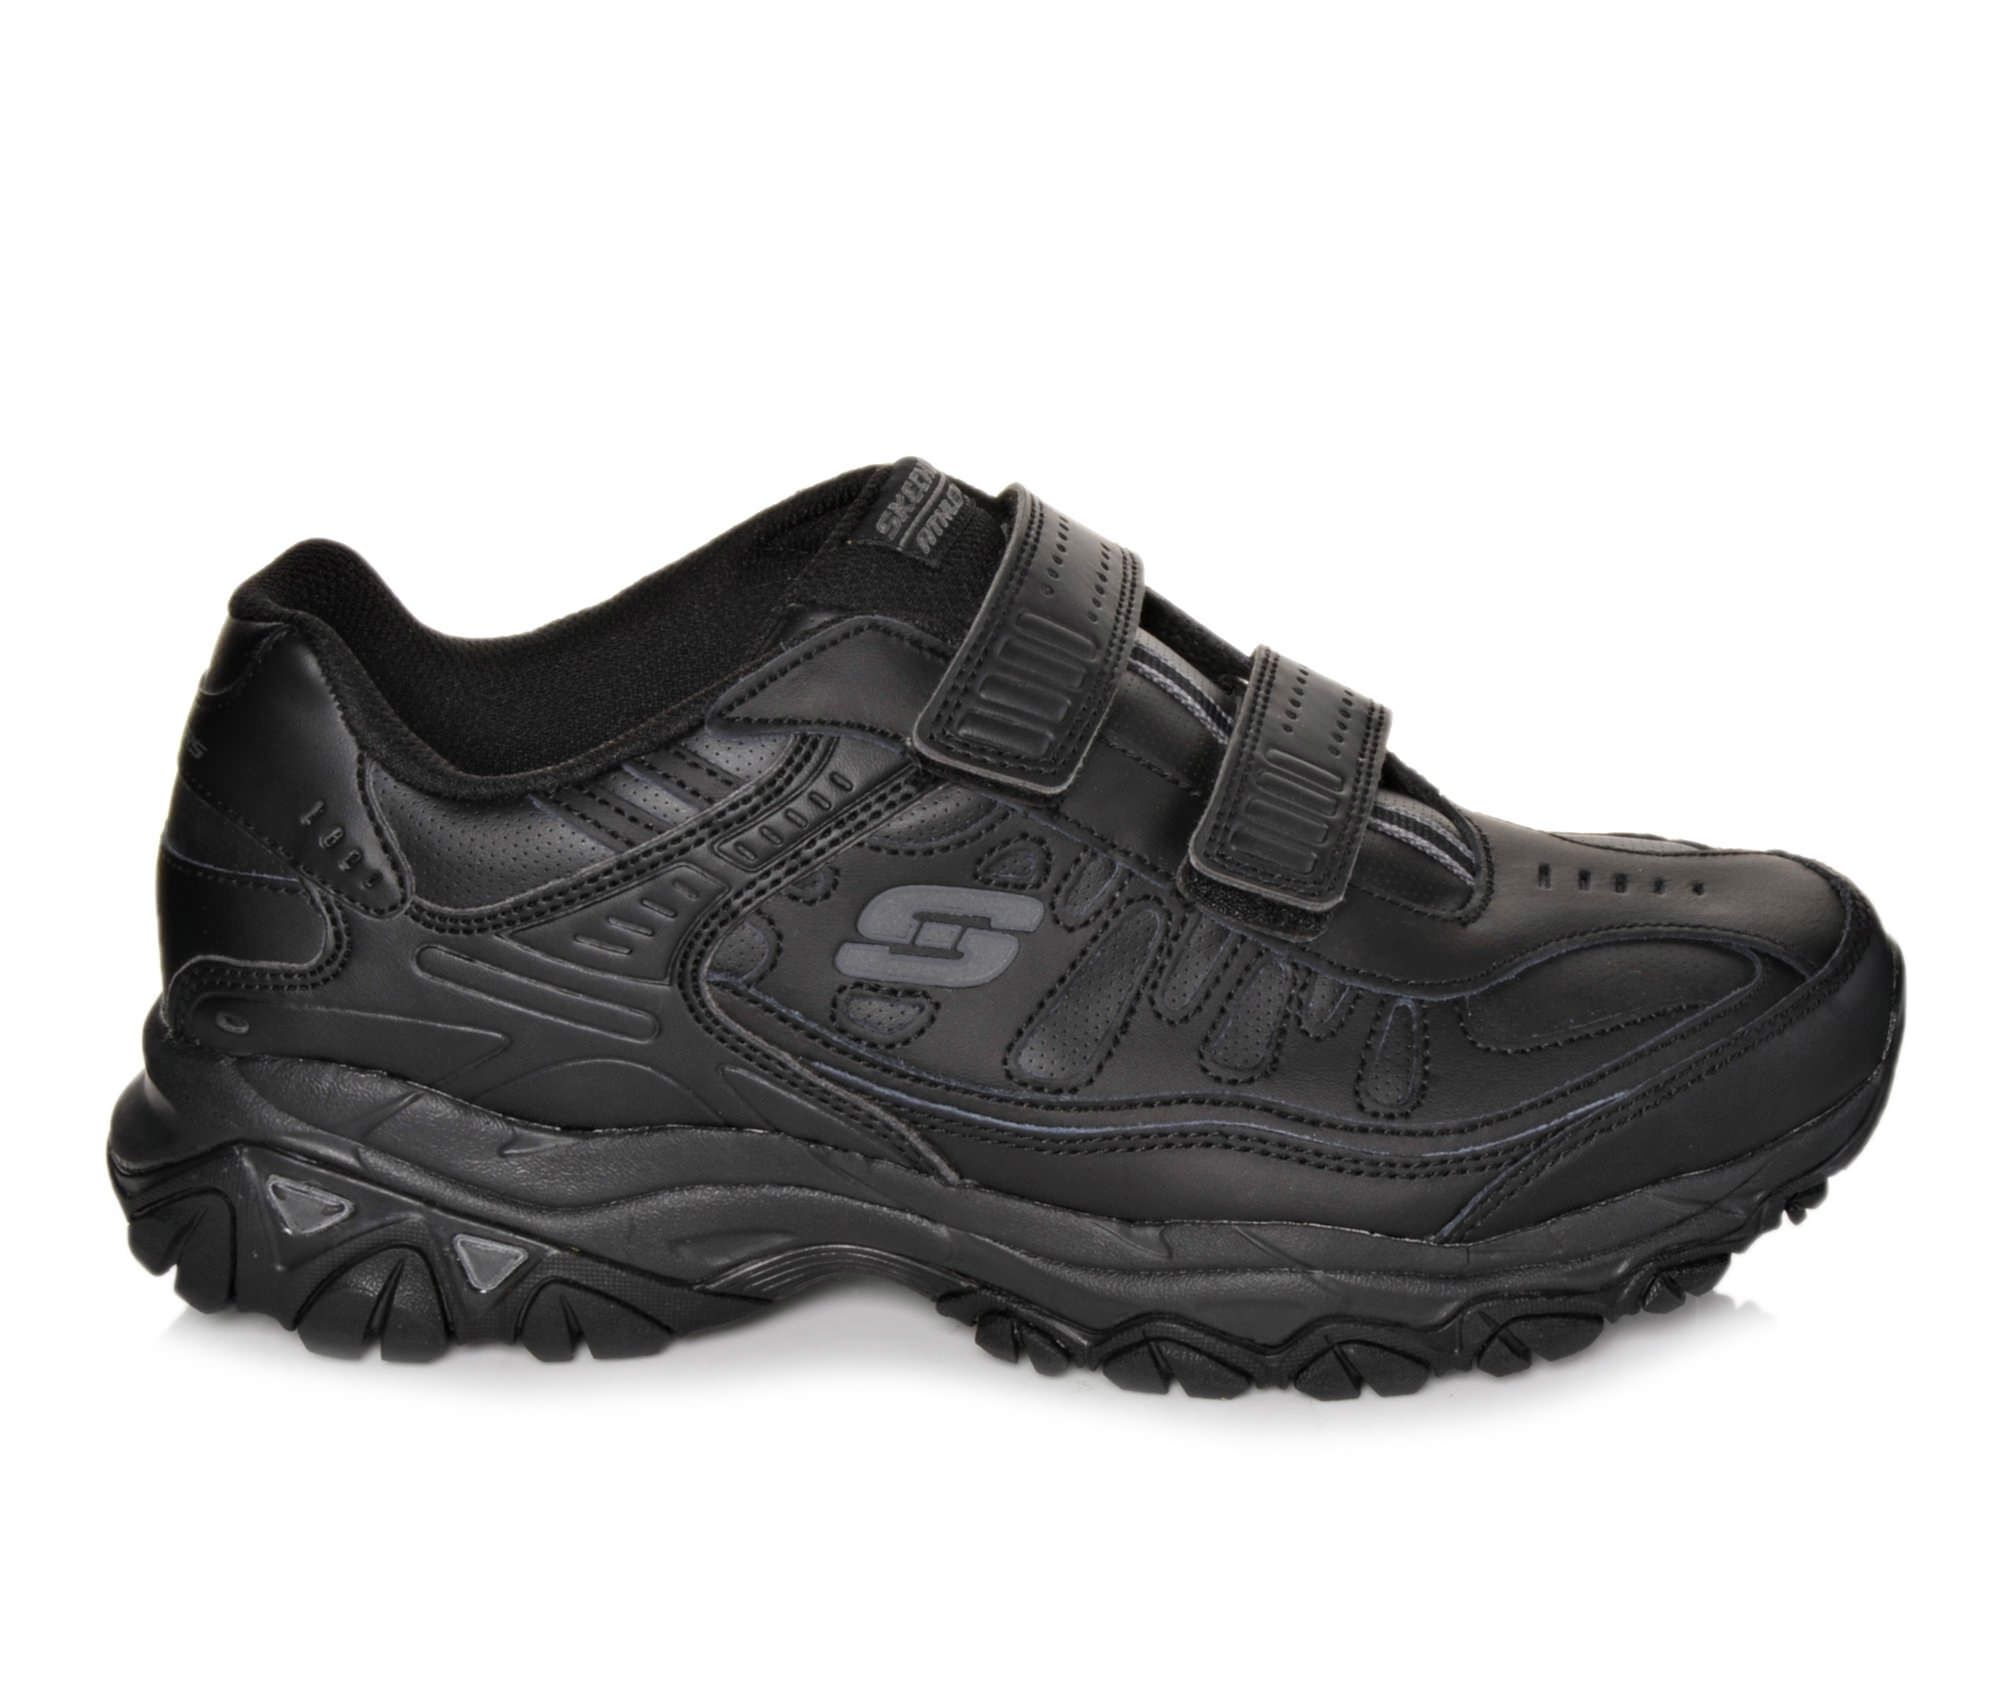 skechers go walk boots